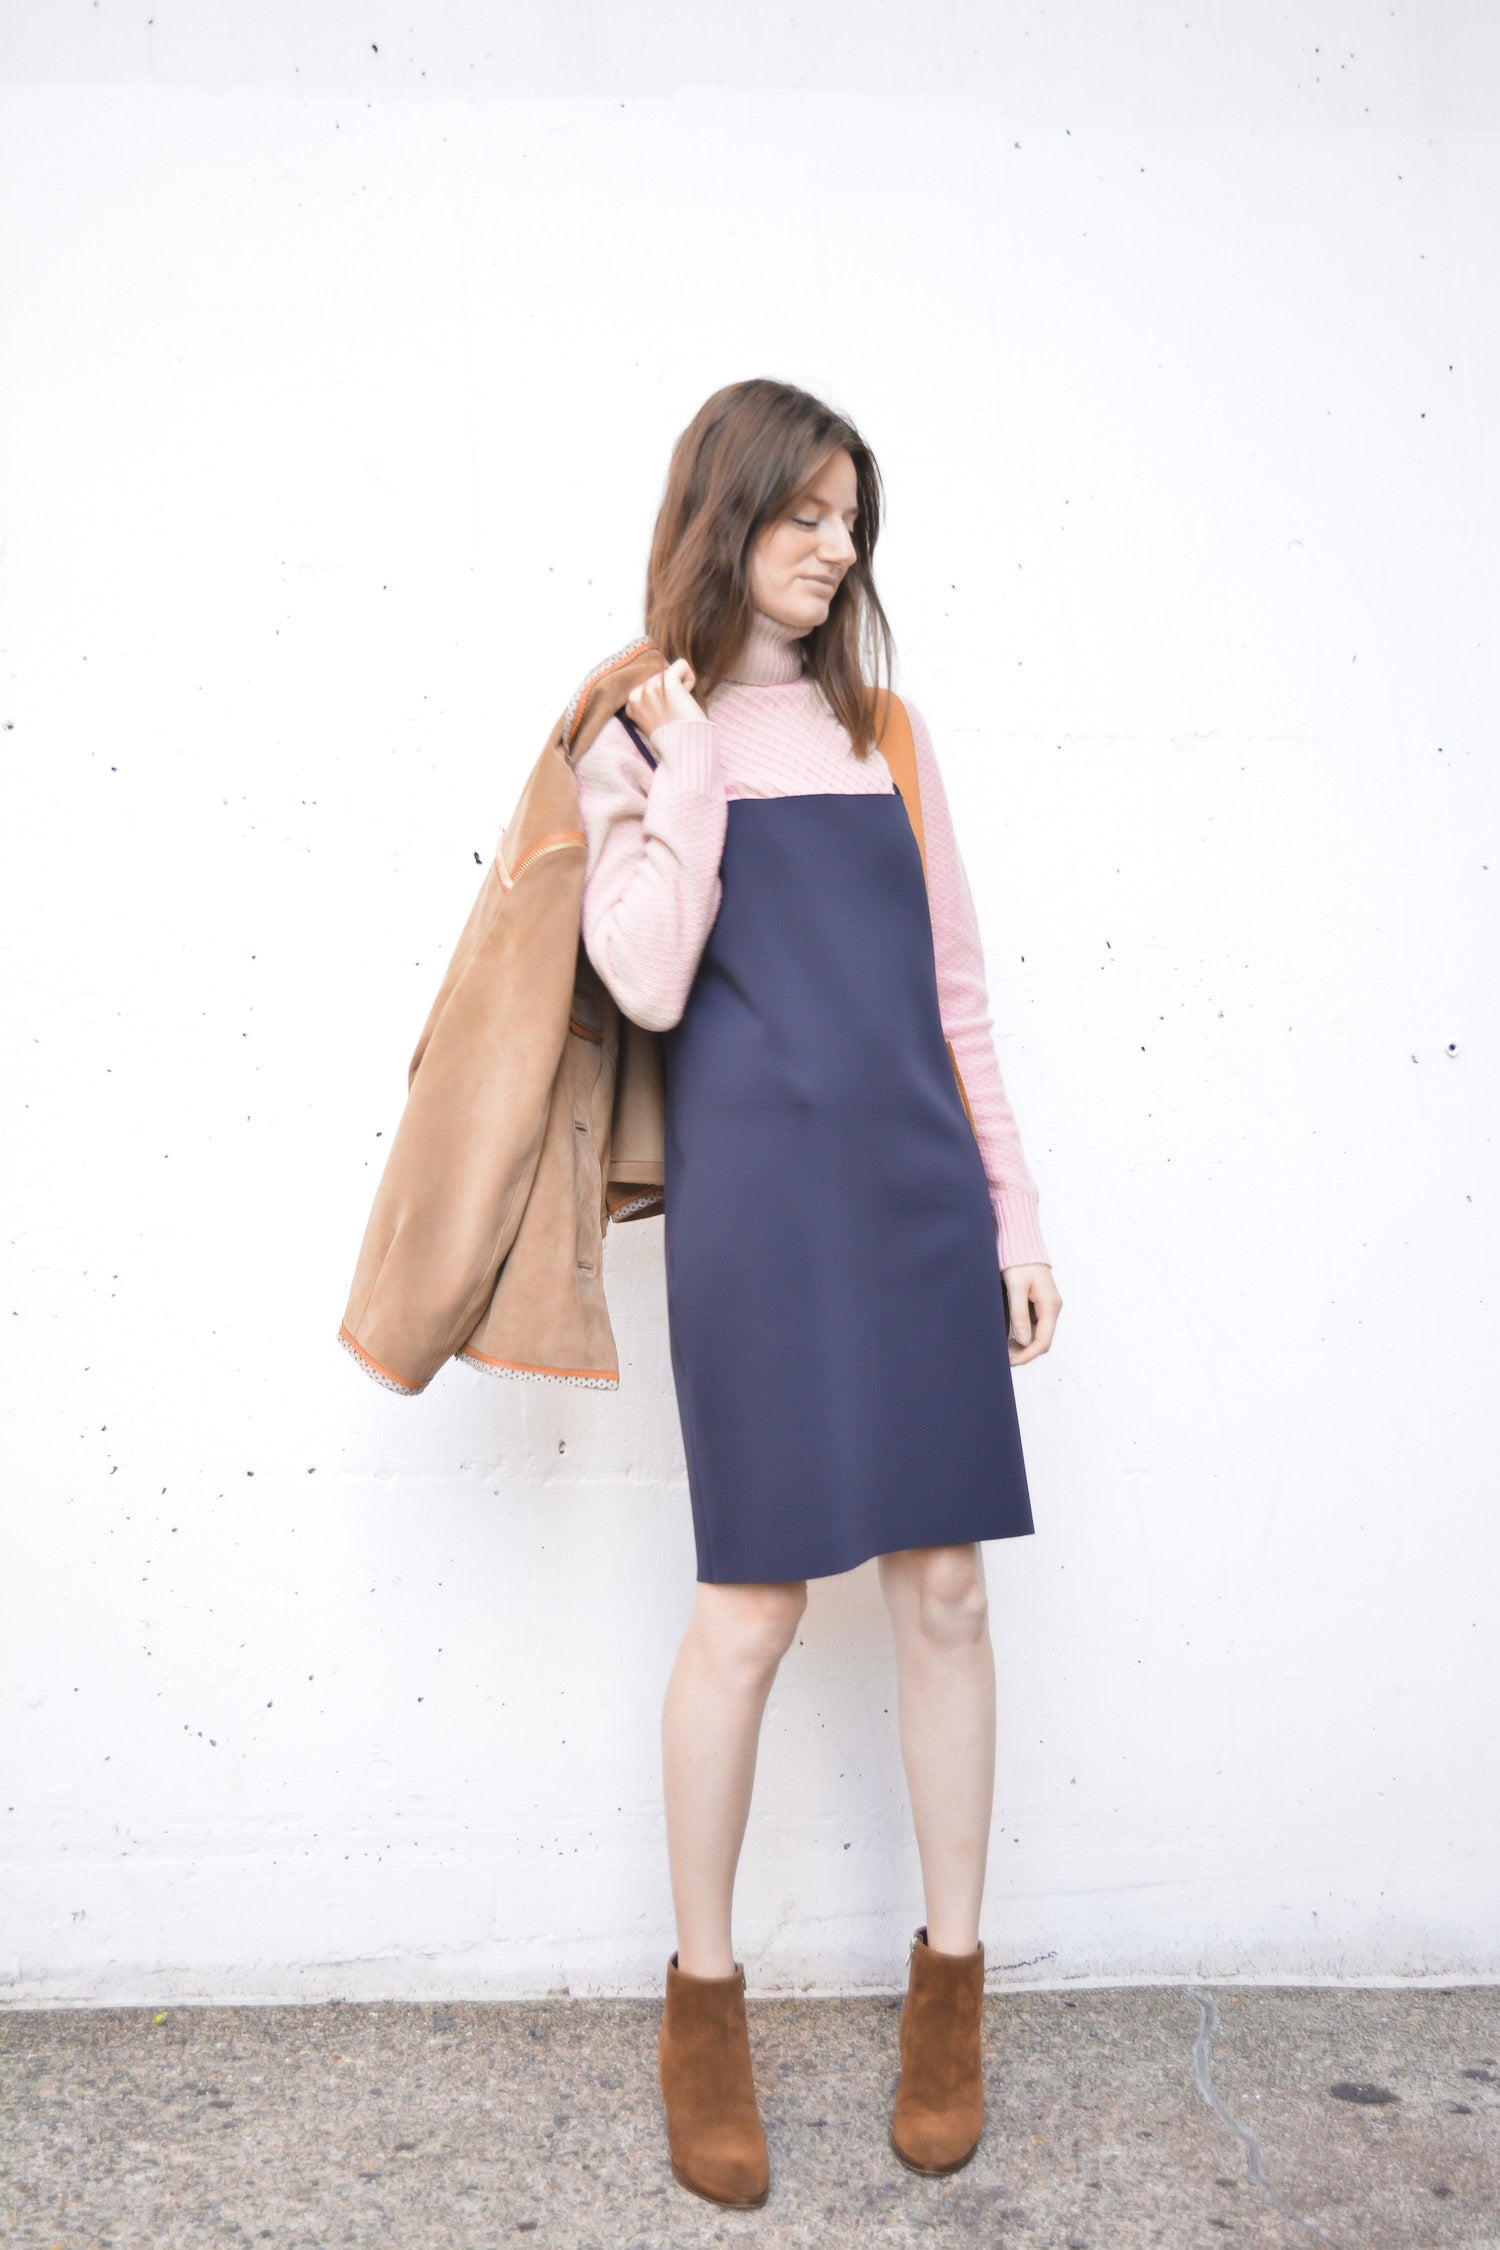 00223f8d04 Another big trend is the jumper (button up or shift dress) worn over a  turtleneck or sweater (add colorful tights on colder days) and is the best  way to get ...